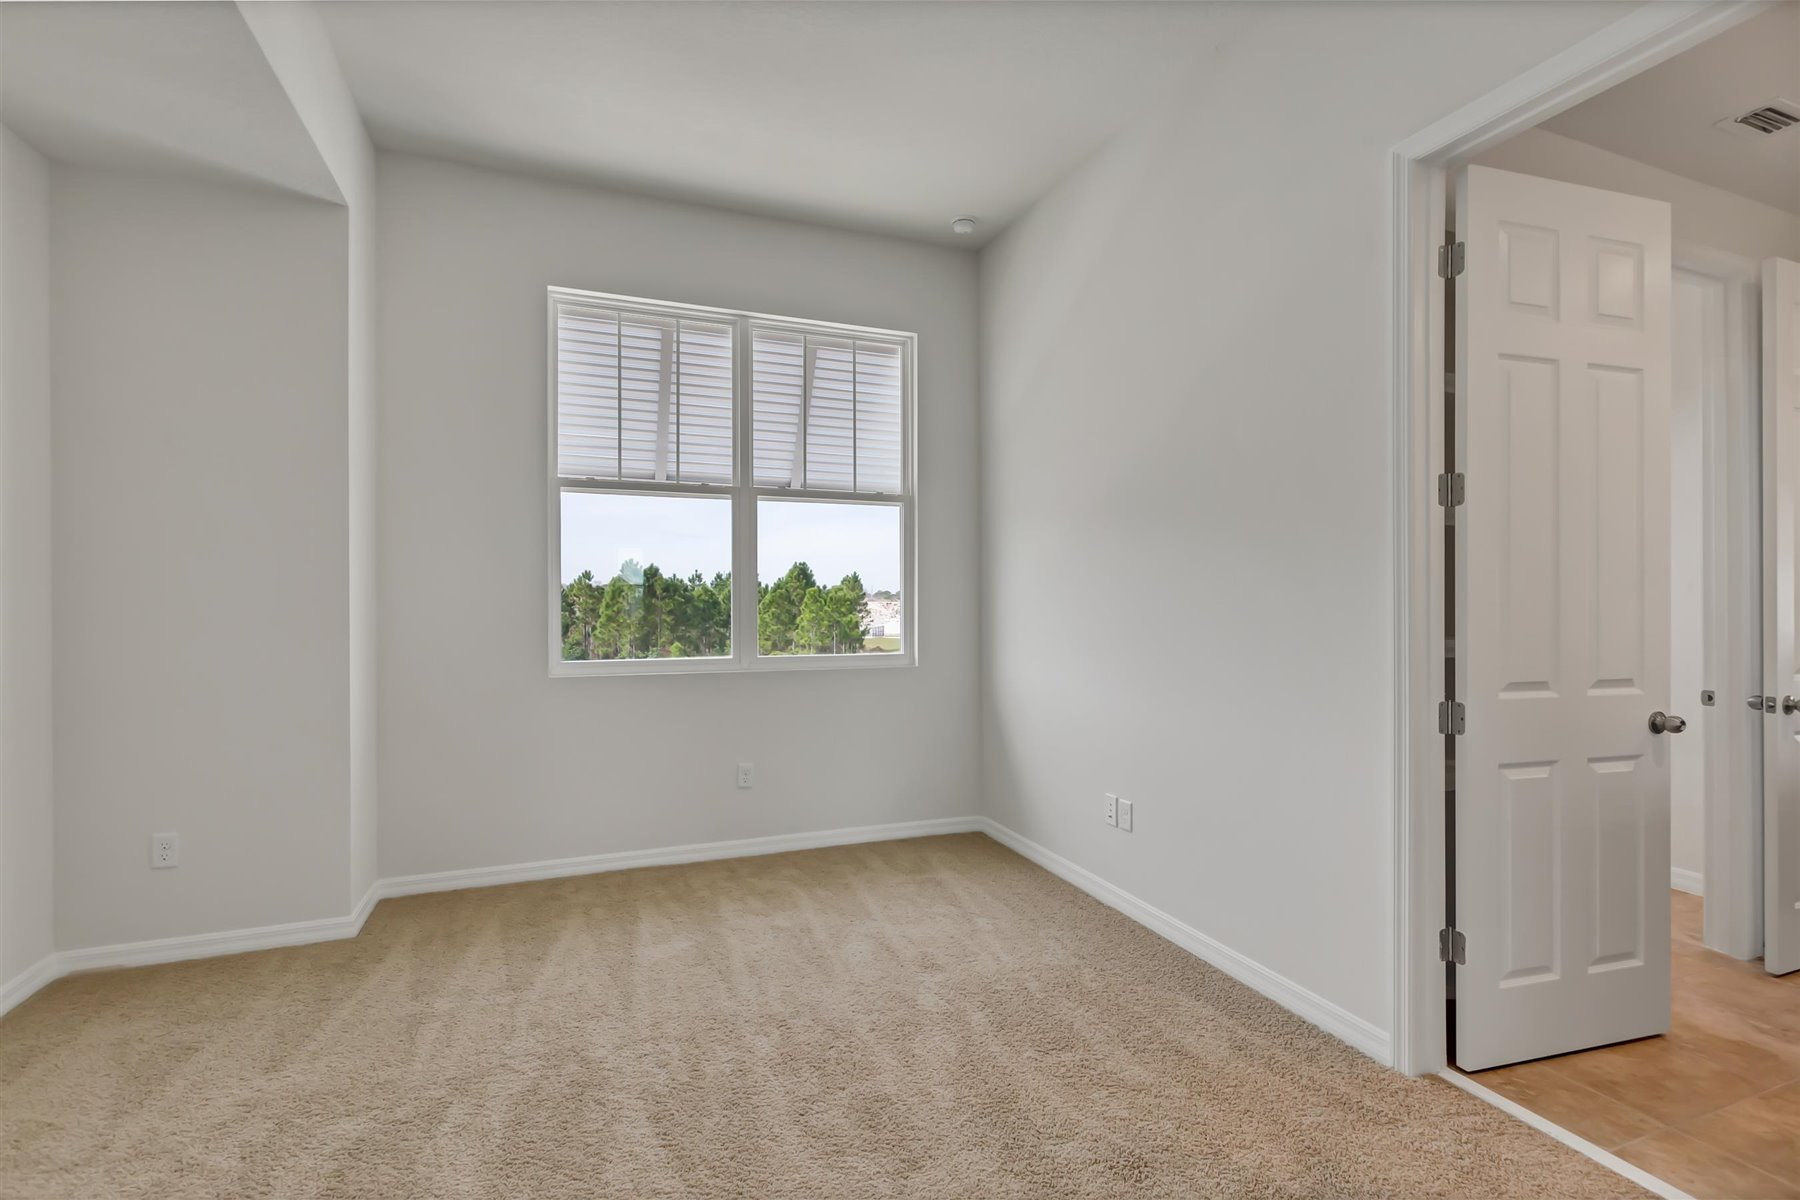 Winthrop Plan Bedroom at Meridian Parks in Orlando Florida by Mattamy Homes